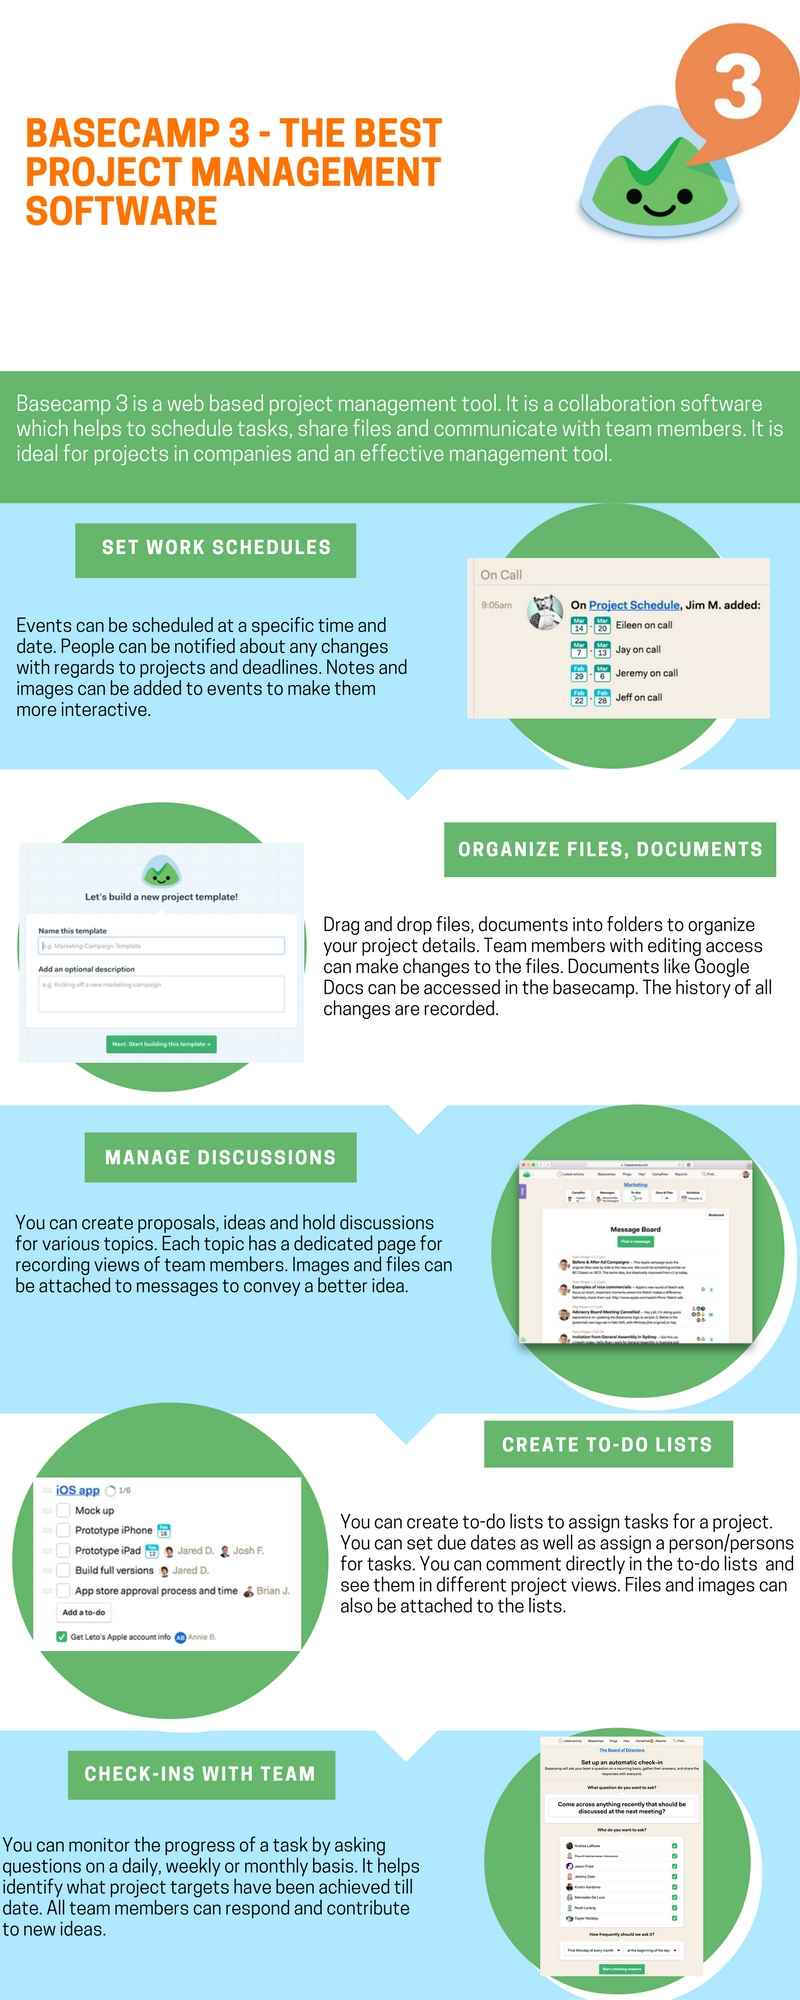 basecamp 3 the best project management software for success 2